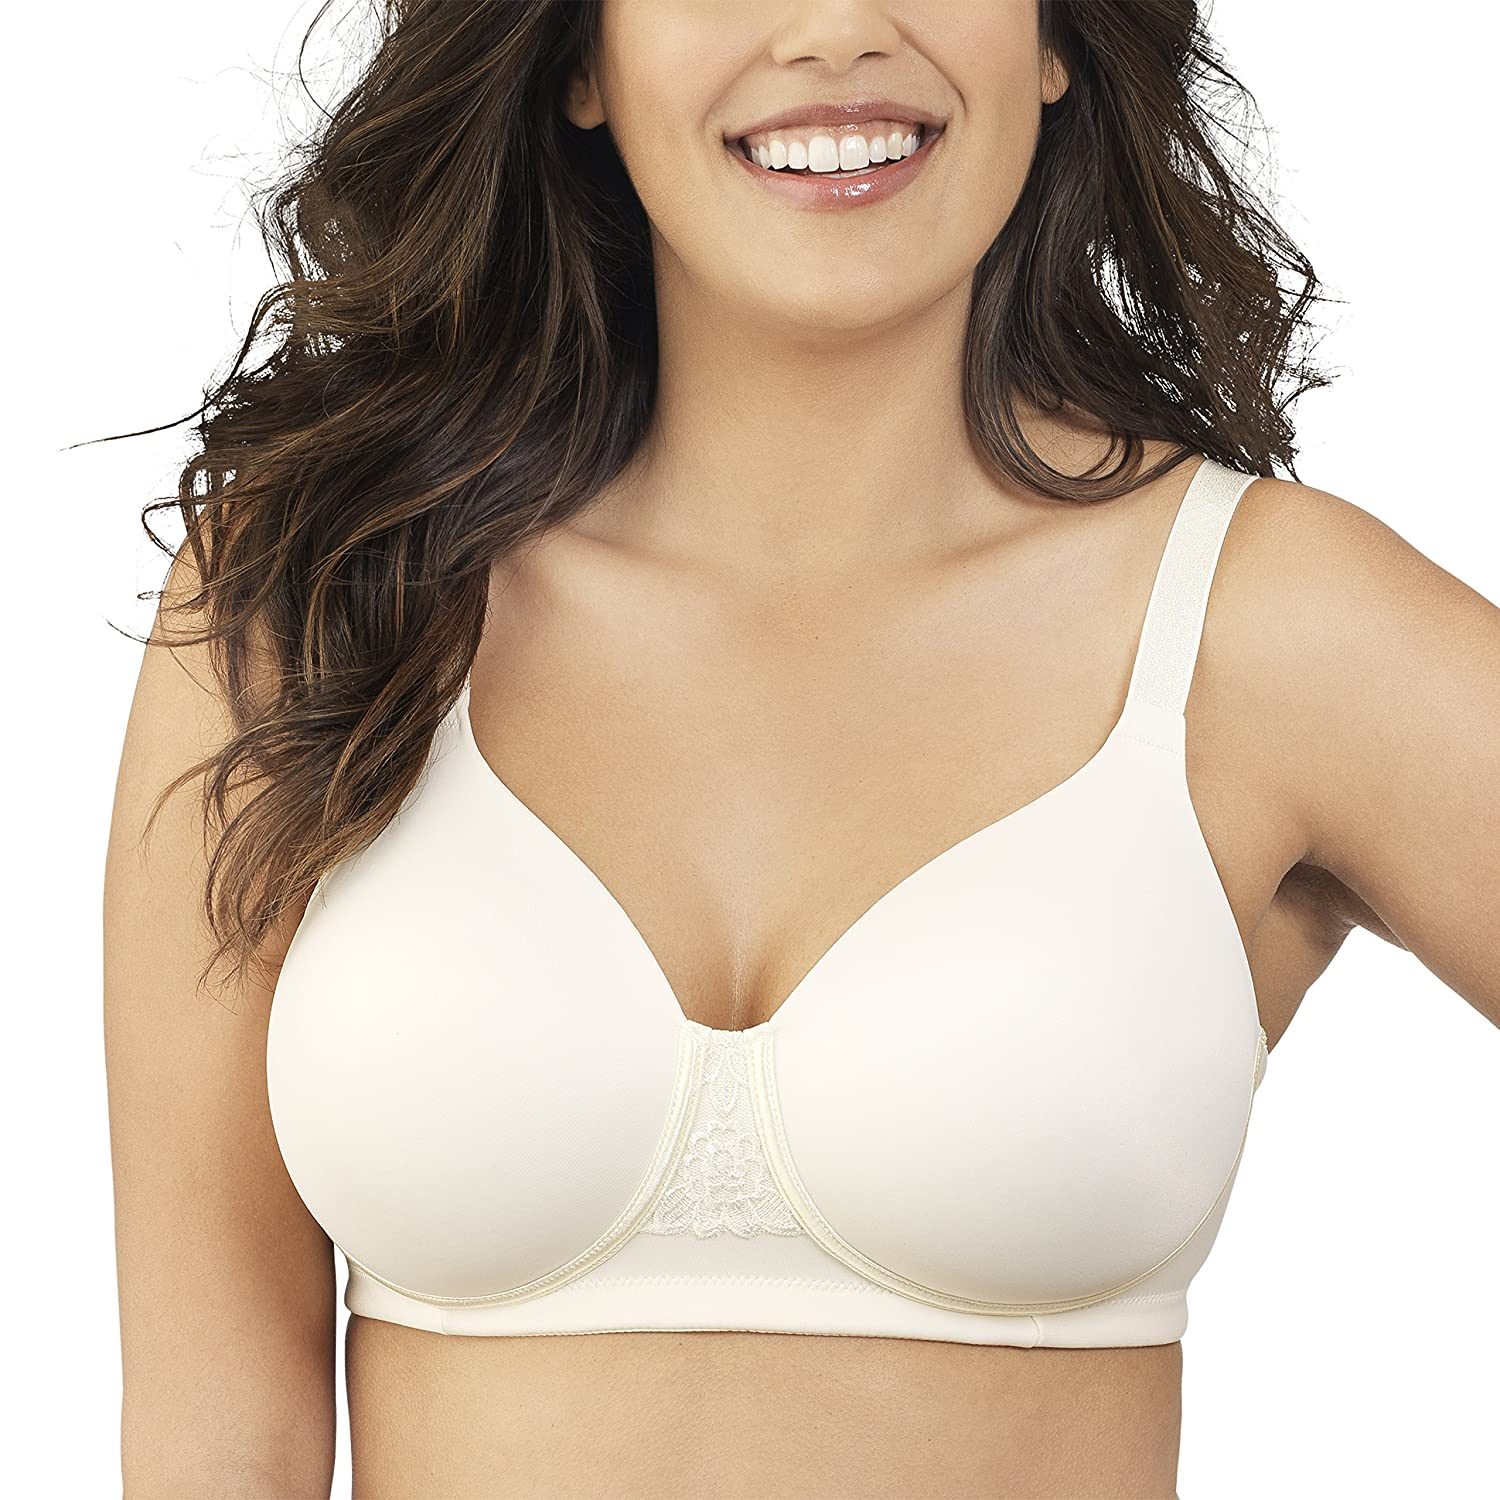 Vanity Fair Women's Beauty Back Full Figure Wirefree Bra 71380, Ivory, 38C:  Amazon.co.uk: Clothing